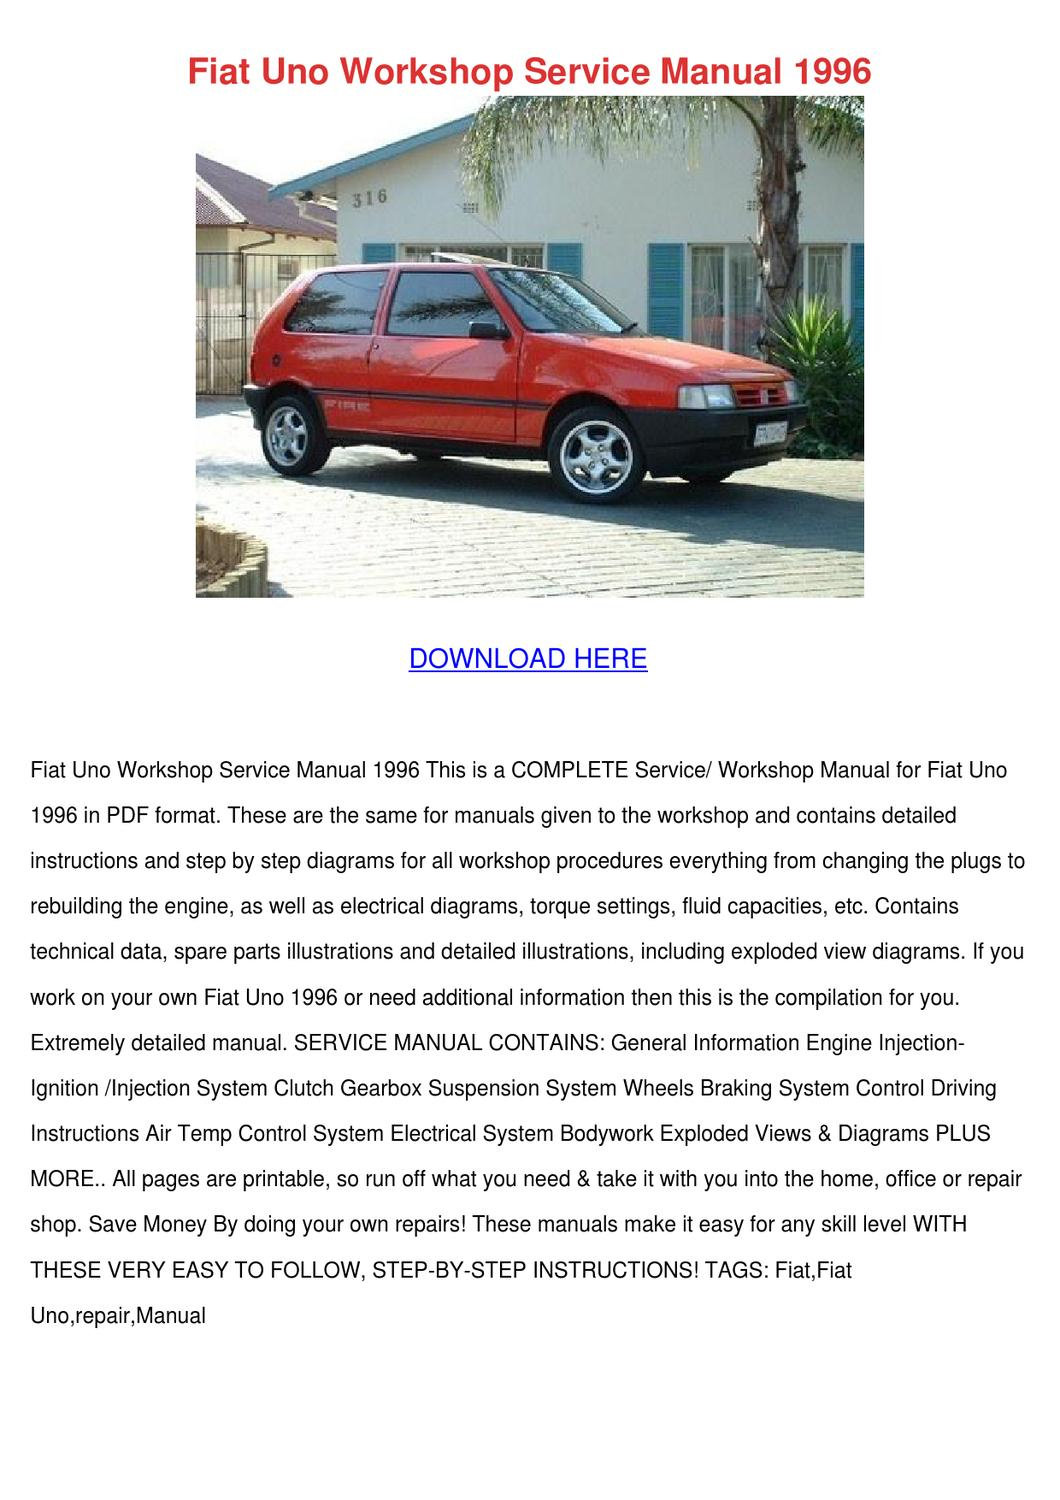 Fiat Uno Pdf Service Repair Workshop Manual